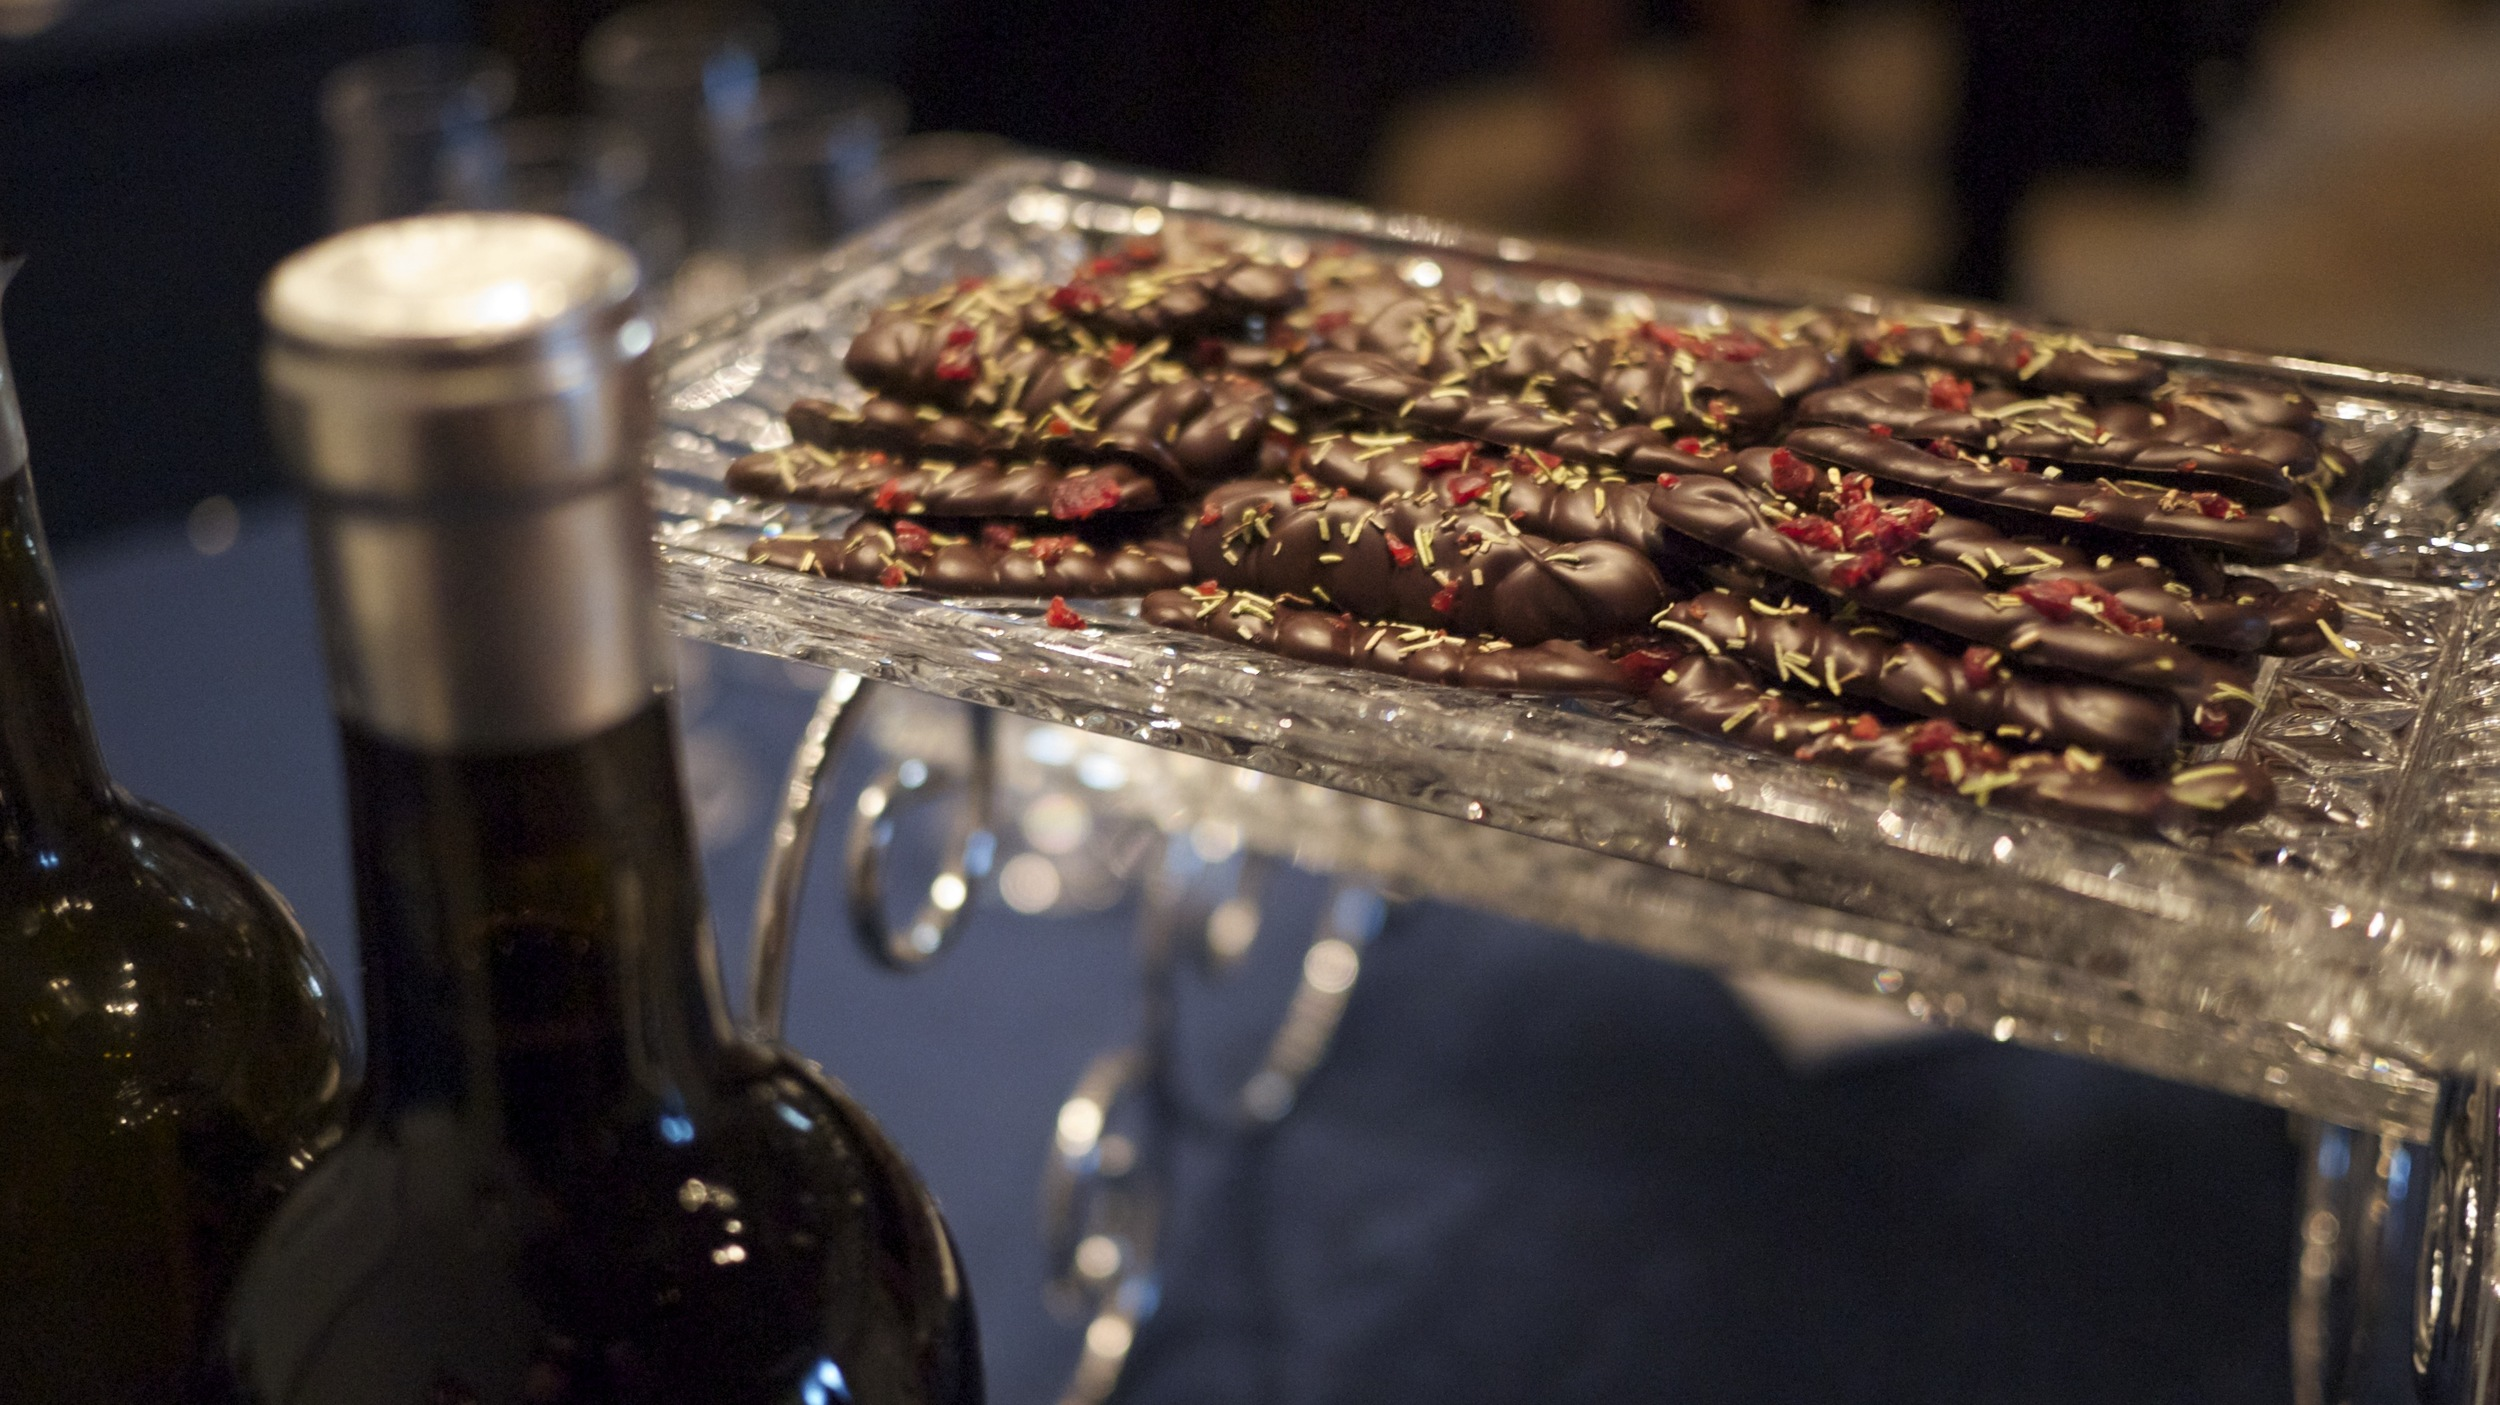 Chocolate Pairing Station  - Chocolate is perfect for Wine, Scotch and Tea pairings! We bring in expert Sommeliers from each medium to create the ultimate pairing experience.